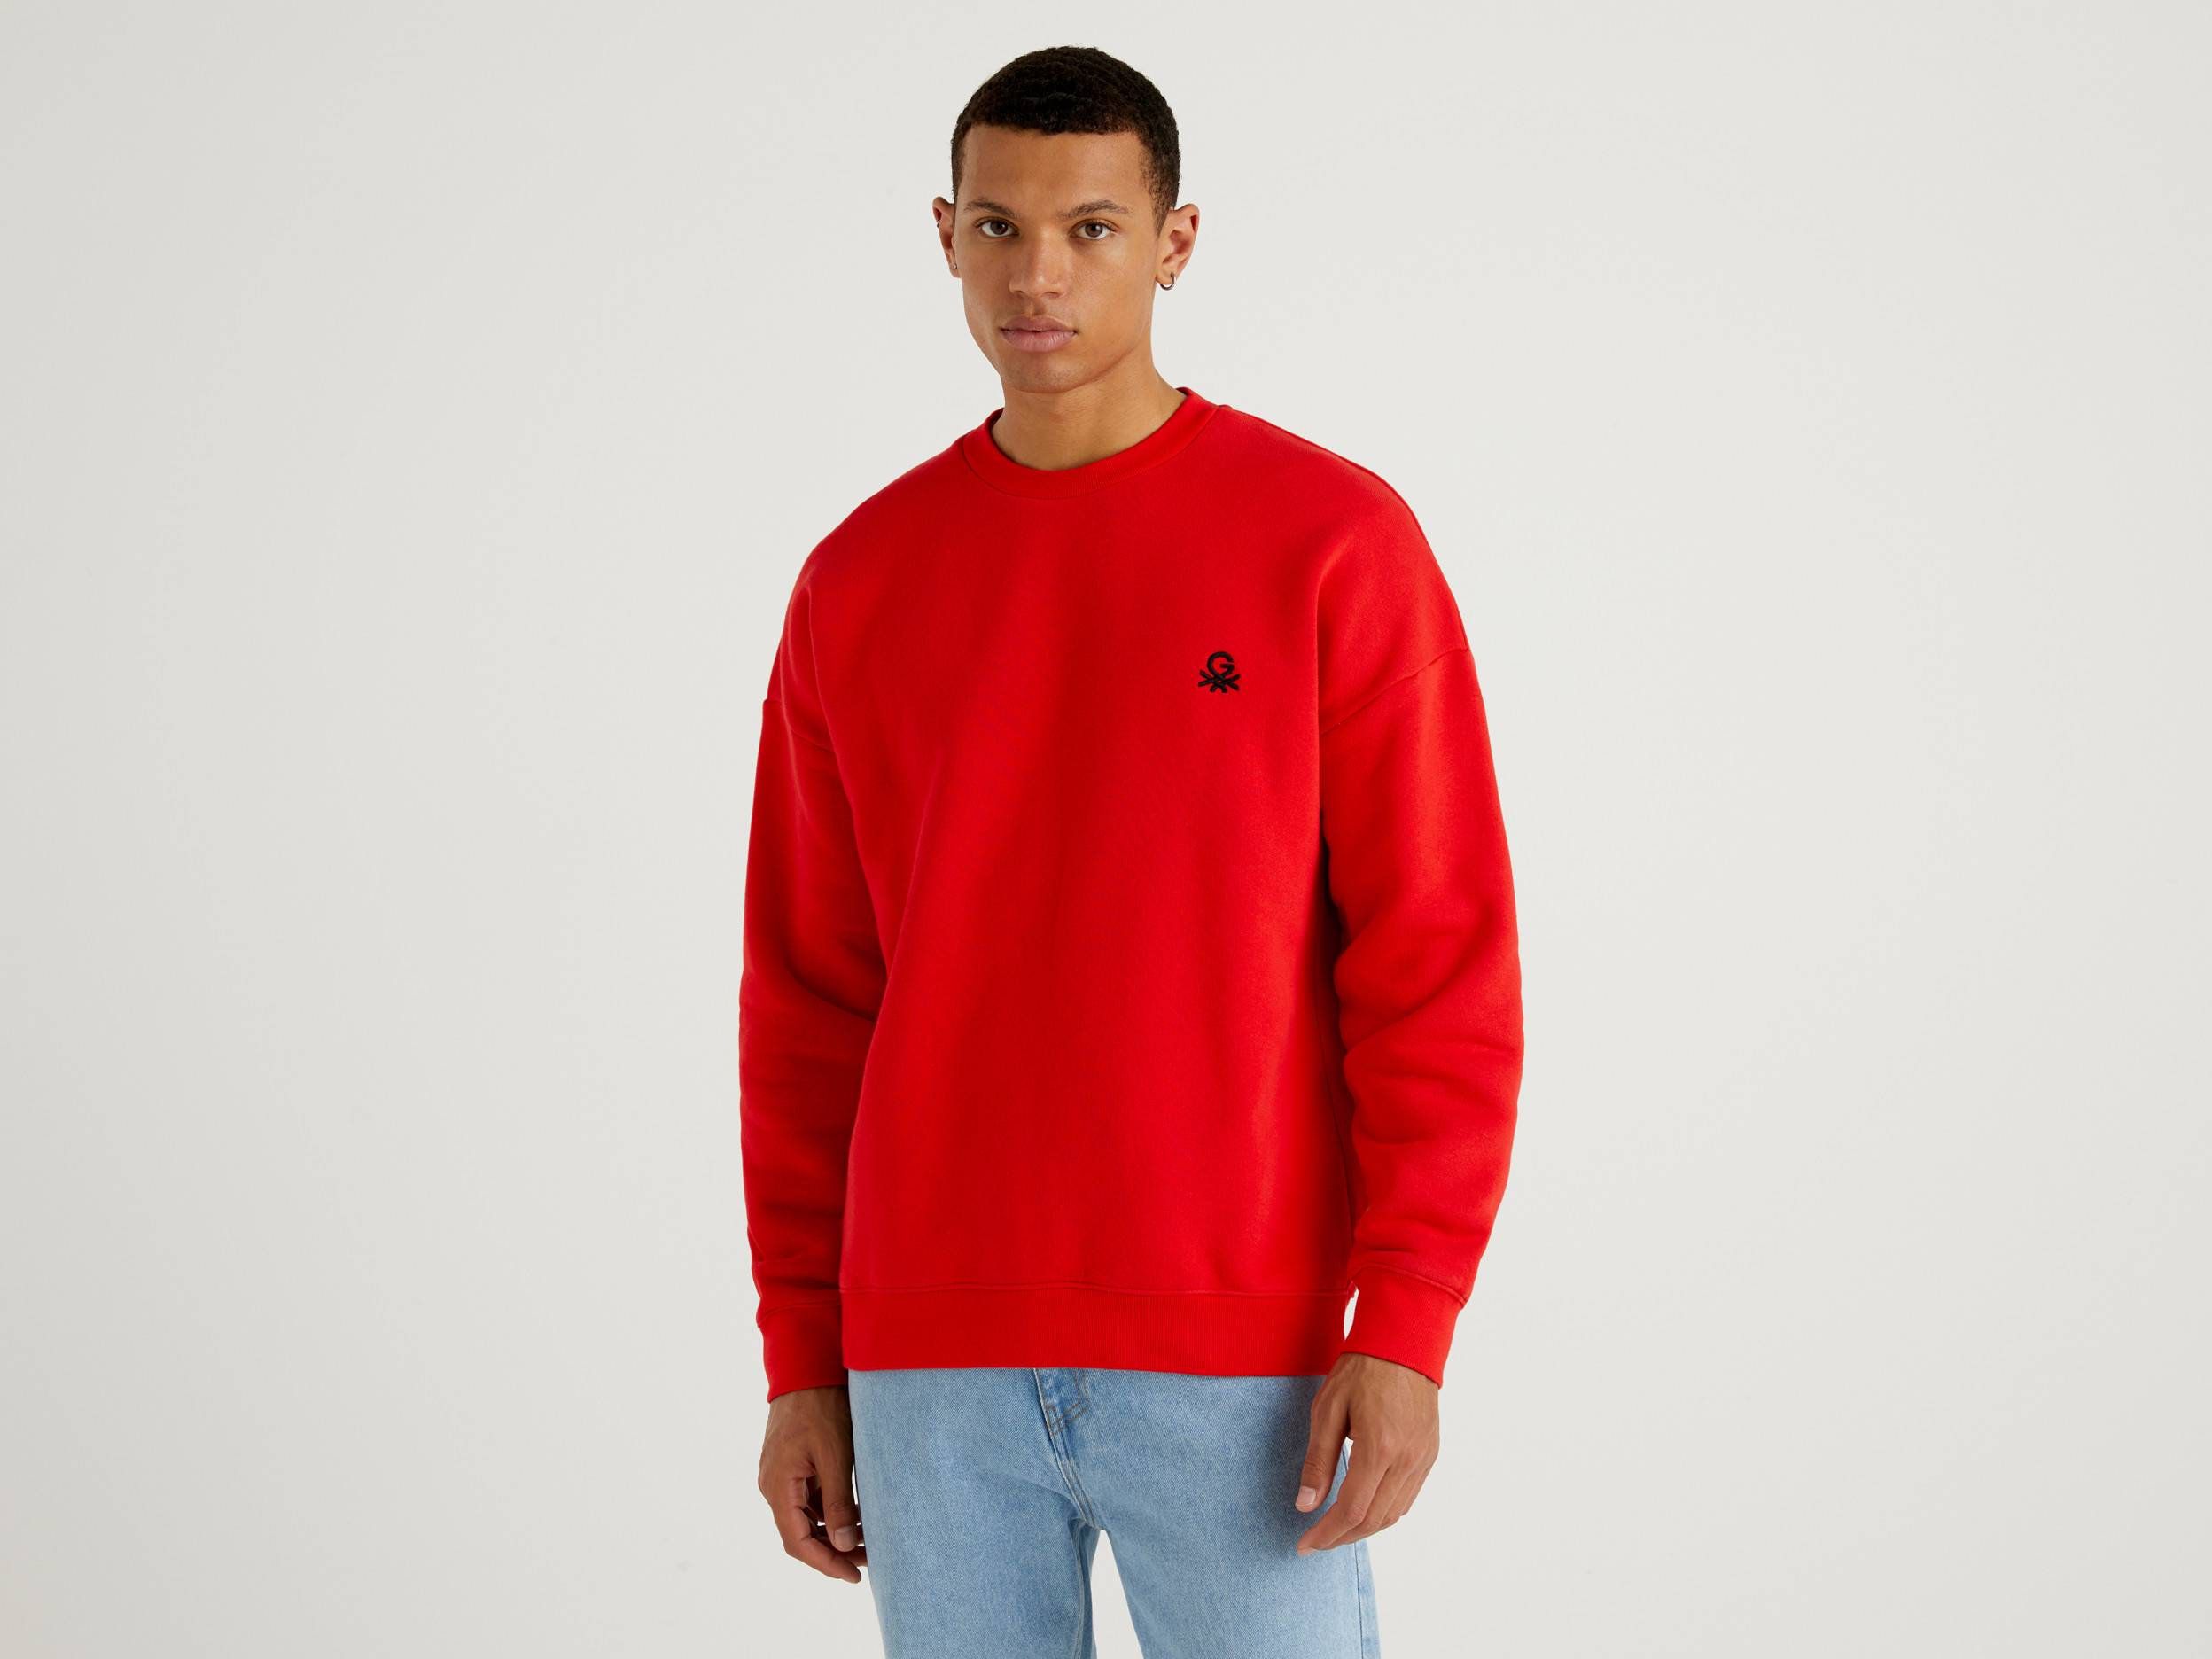 United Colors of Benetton Benetton, Red Unisex Sweatshirt With Embroidery And Print By Ghali, taglia S, Red, Men